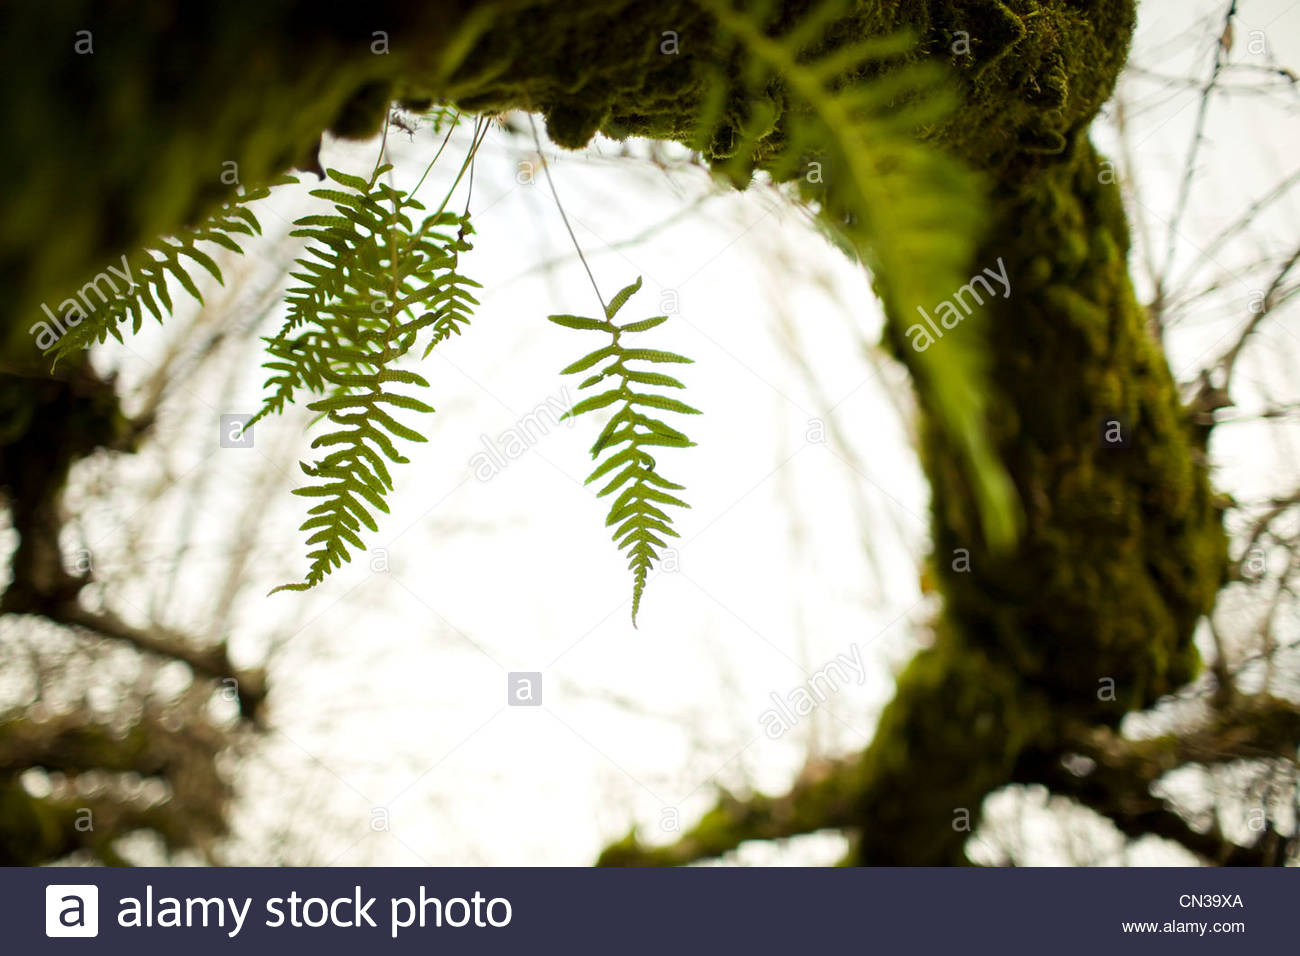 Green moss and fern on tree - Stock Image